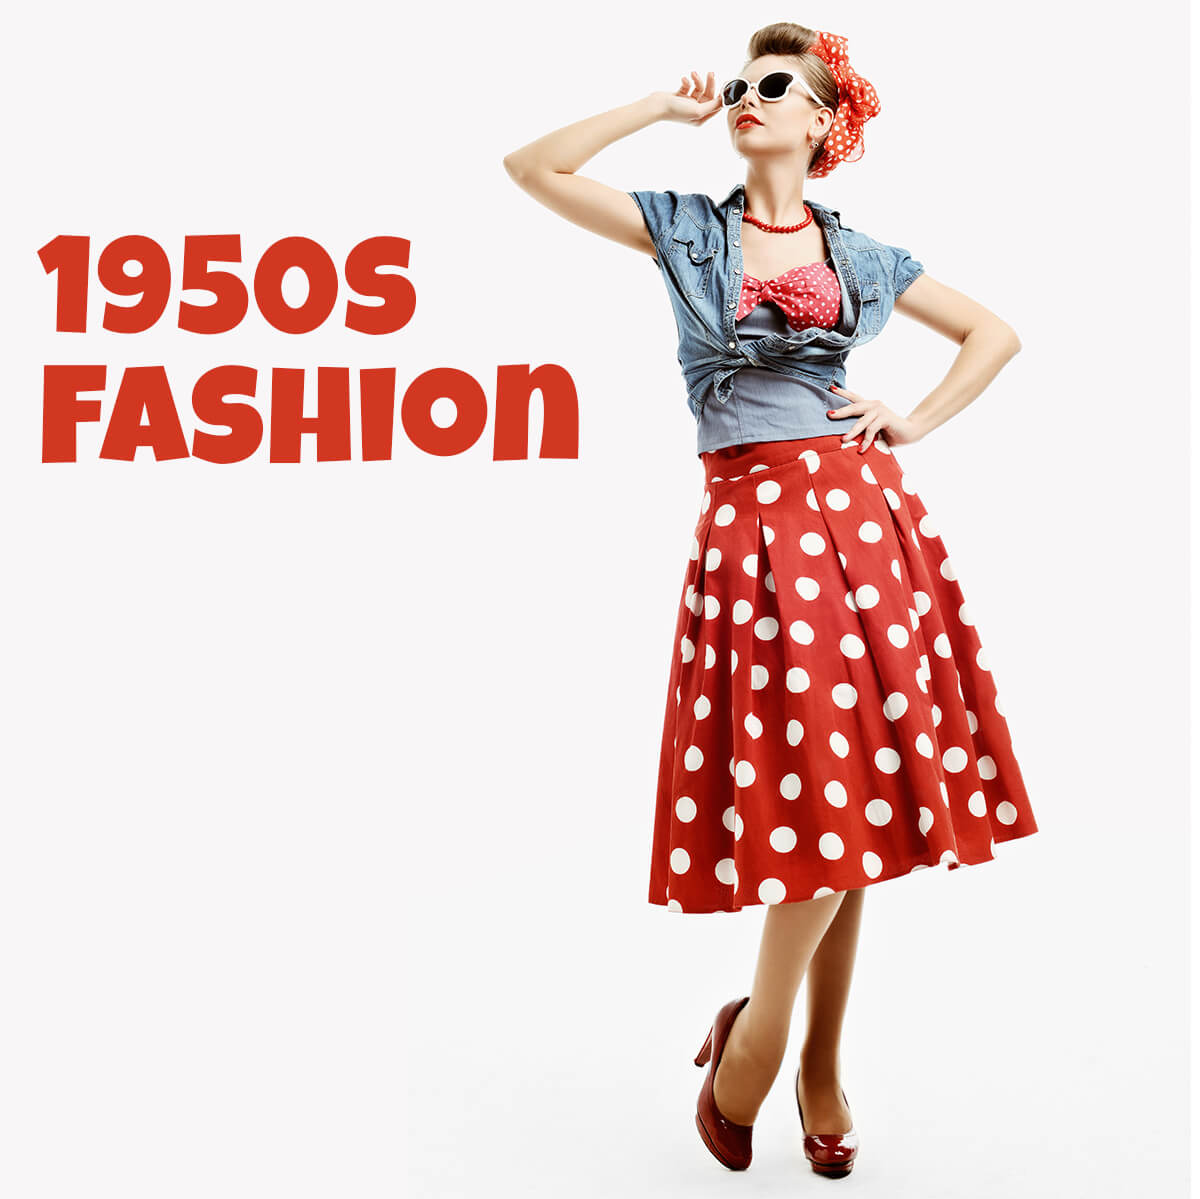 Women s Clothing - 1950s - Clothing - Dating - Landscape Change What was the fashion like in 1950